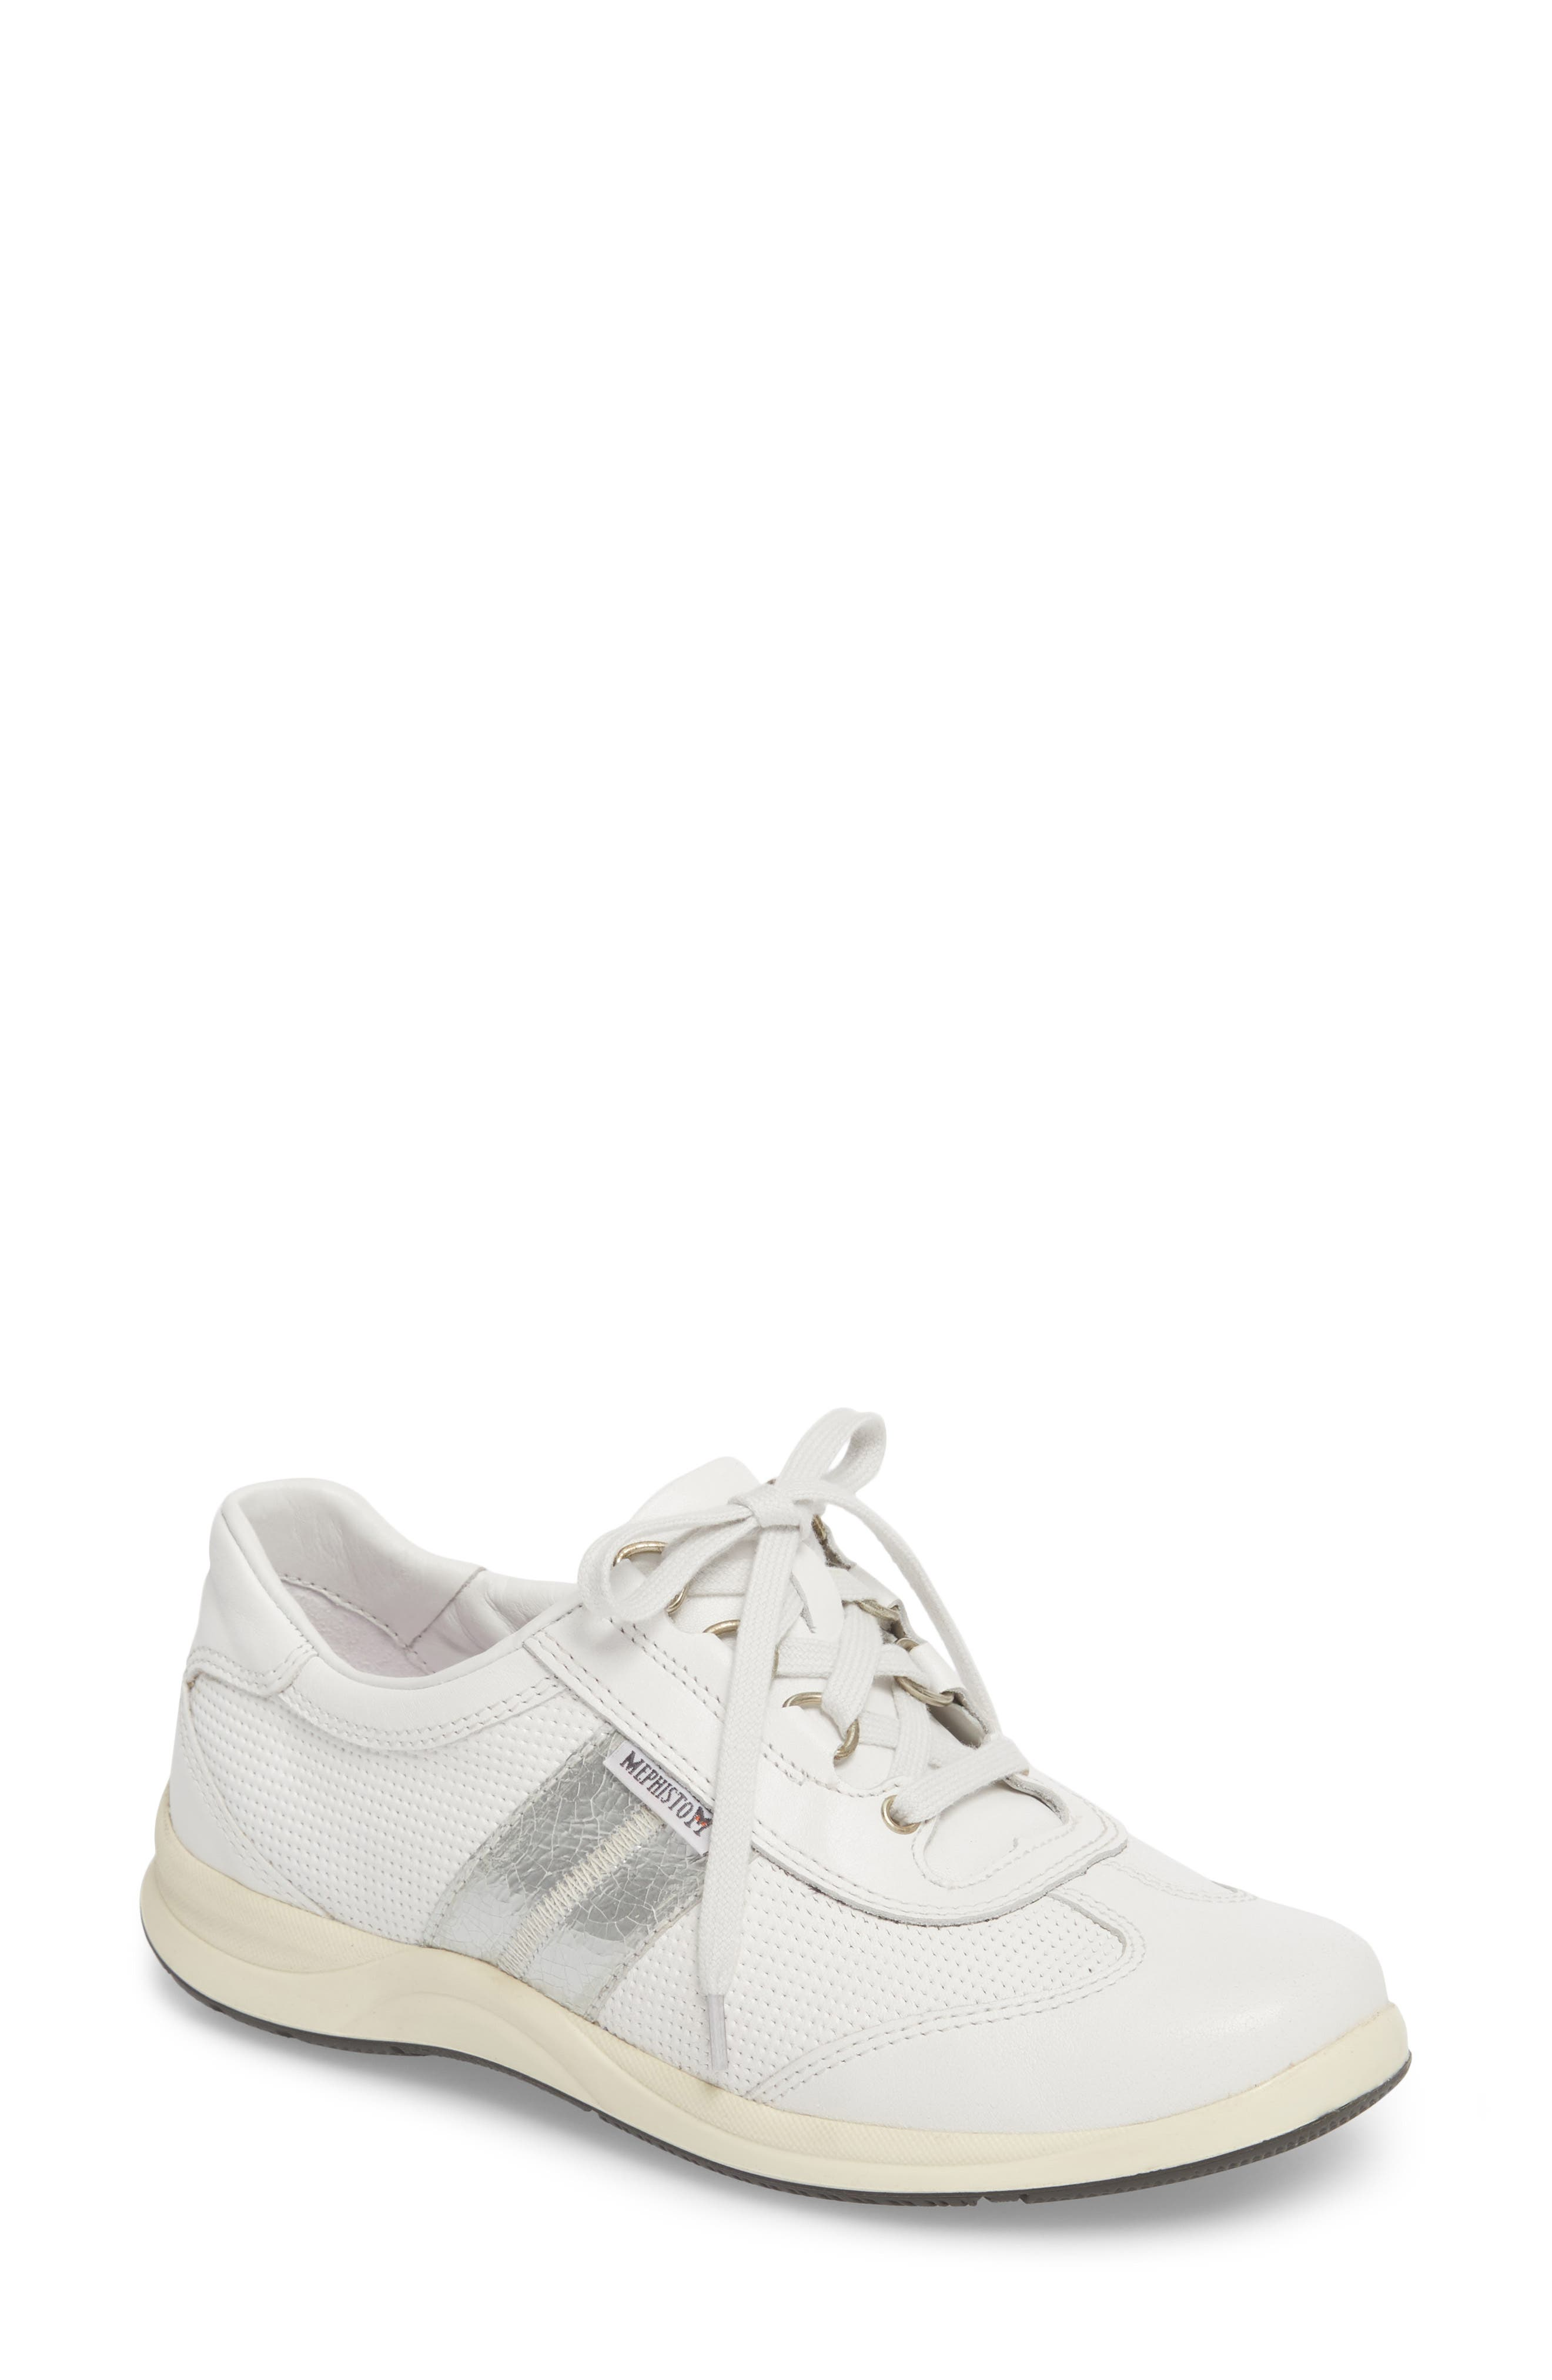 Laser Perforated Walking Shoe,                         Main,                         color, White Fabric